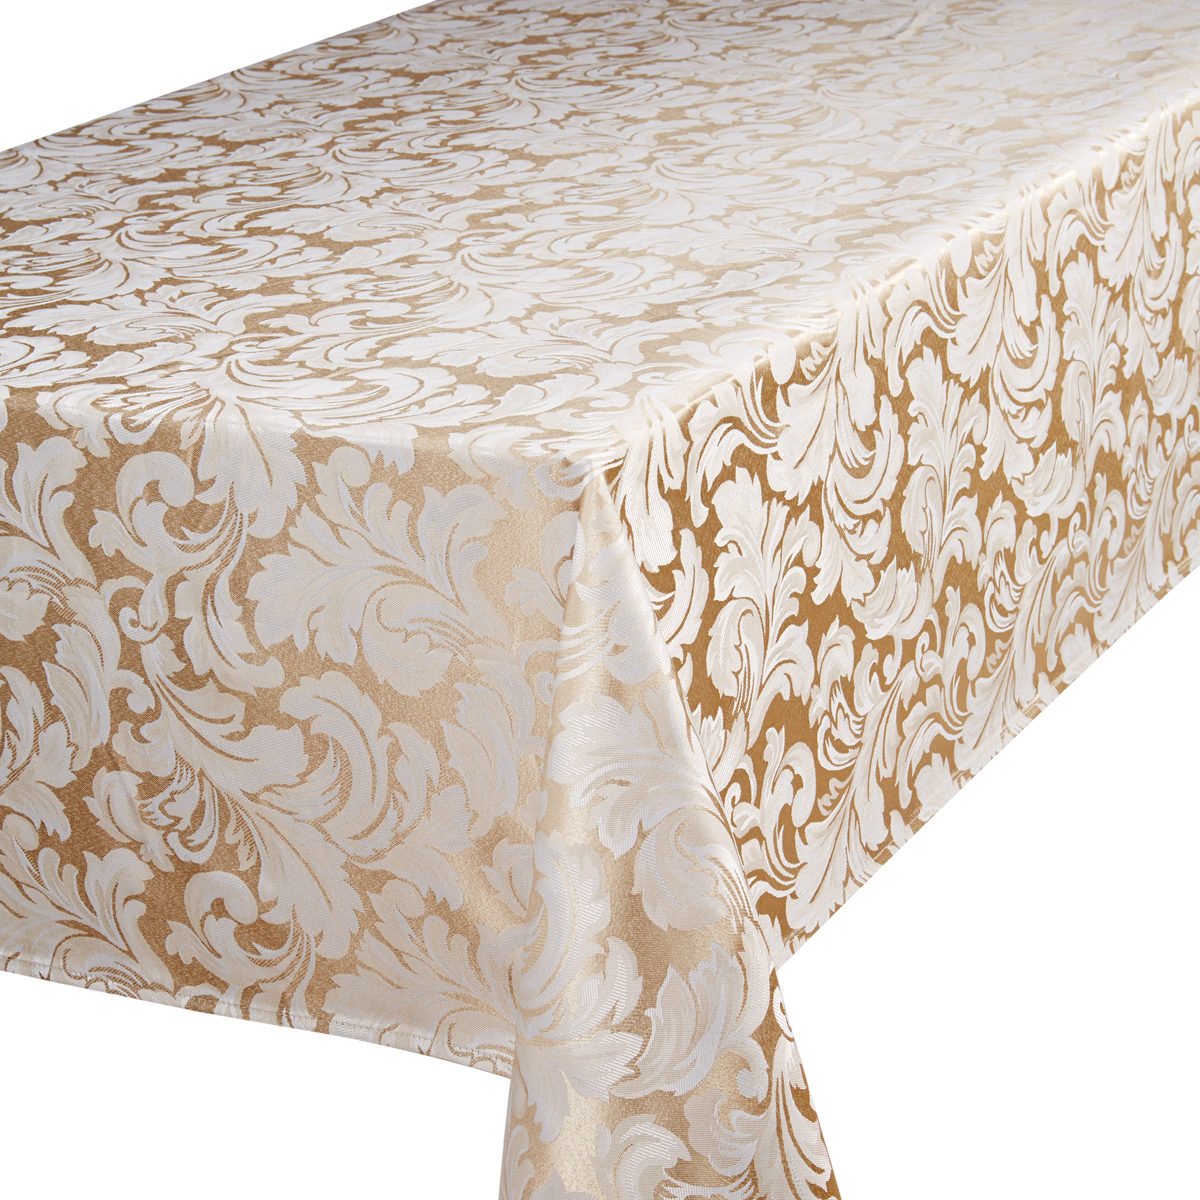 Rideau luxe nappe jacquard linge table serviette set table chemin toute taille ebay for Art de la table de luxe